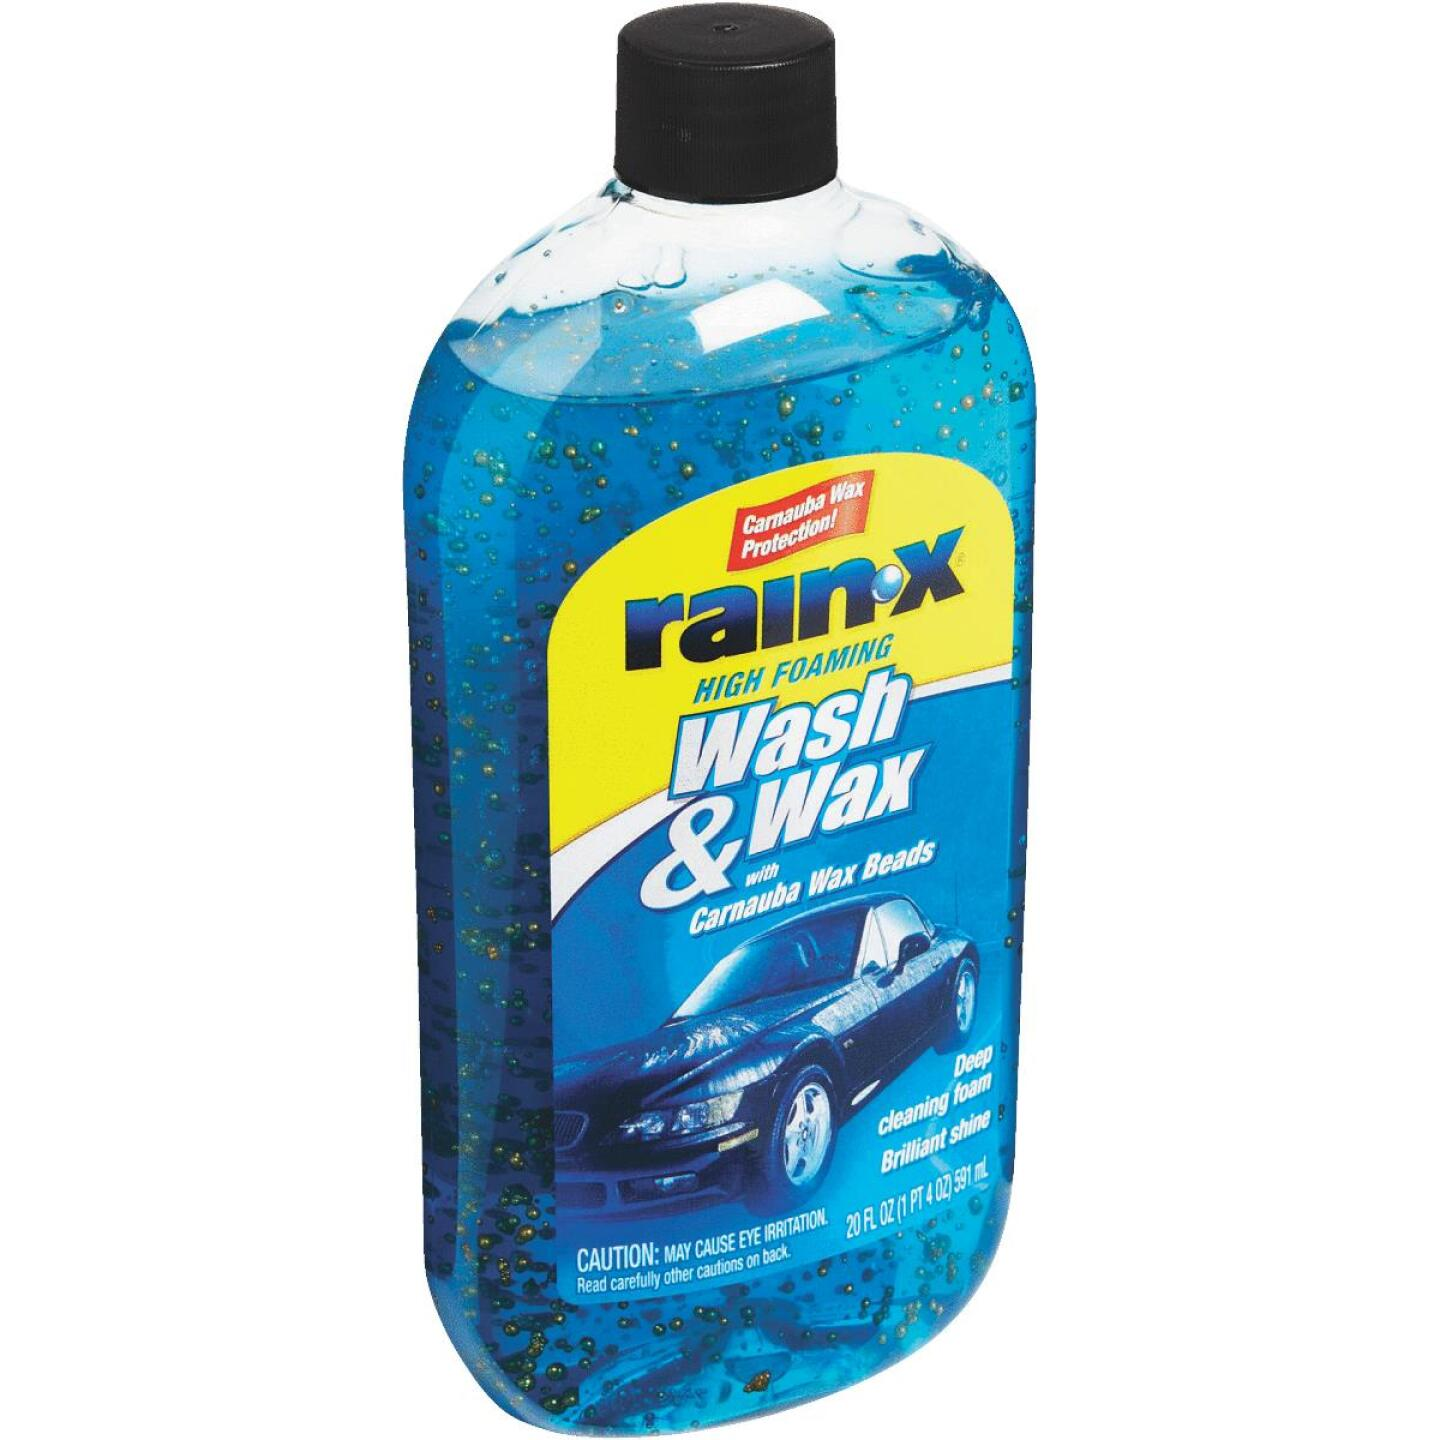 RAIN-X 20 Oz. Liquid High Foaming Car Wash & Wax w/Carnauba Wax Image 3